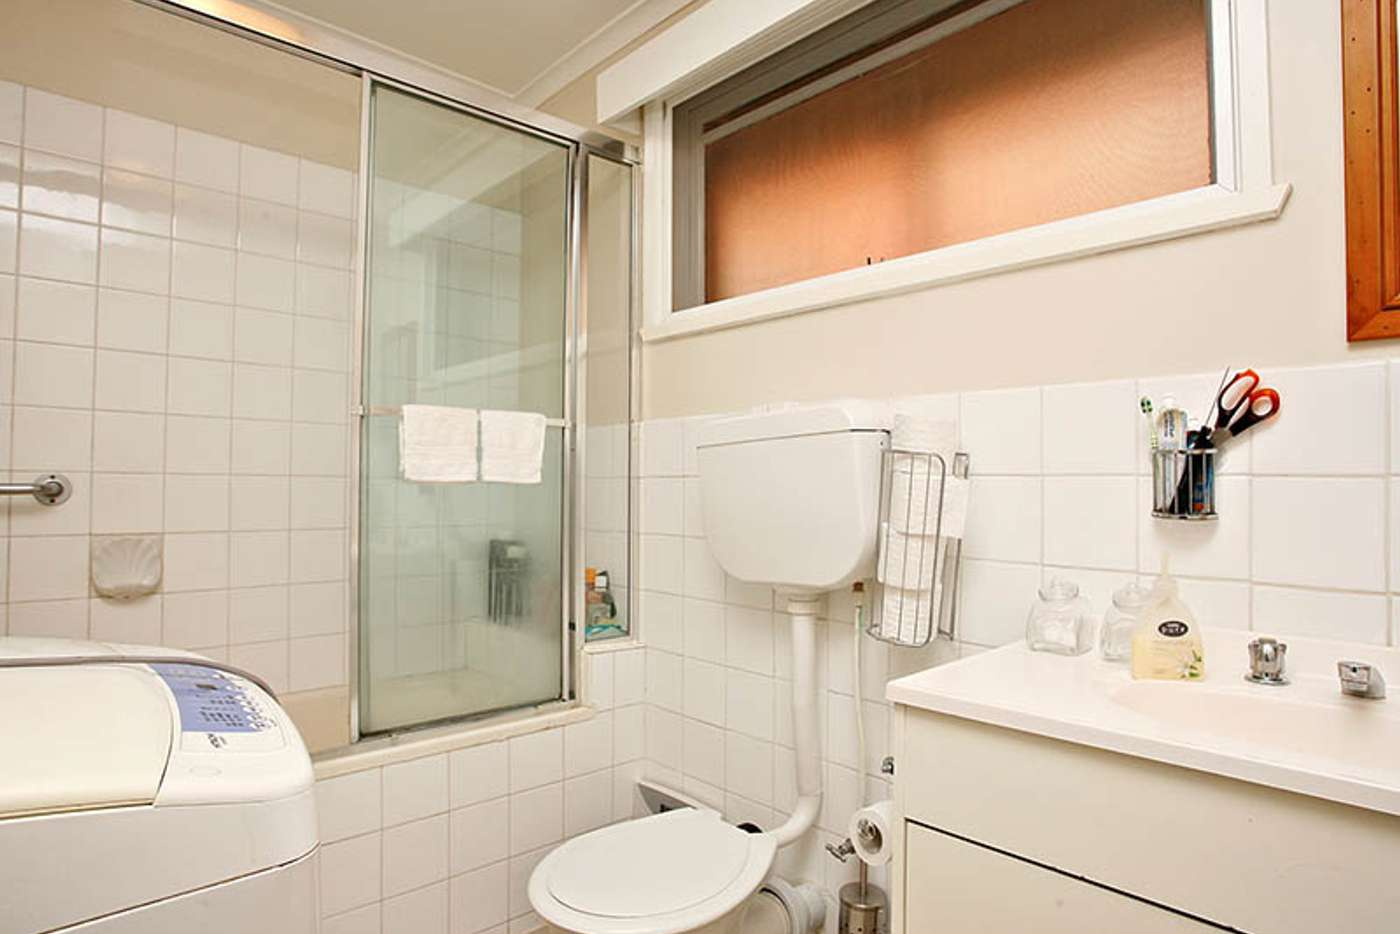 Fifth view of Homely unit listing, 4/118 Moreland Rd, Brunswick VIC 3056